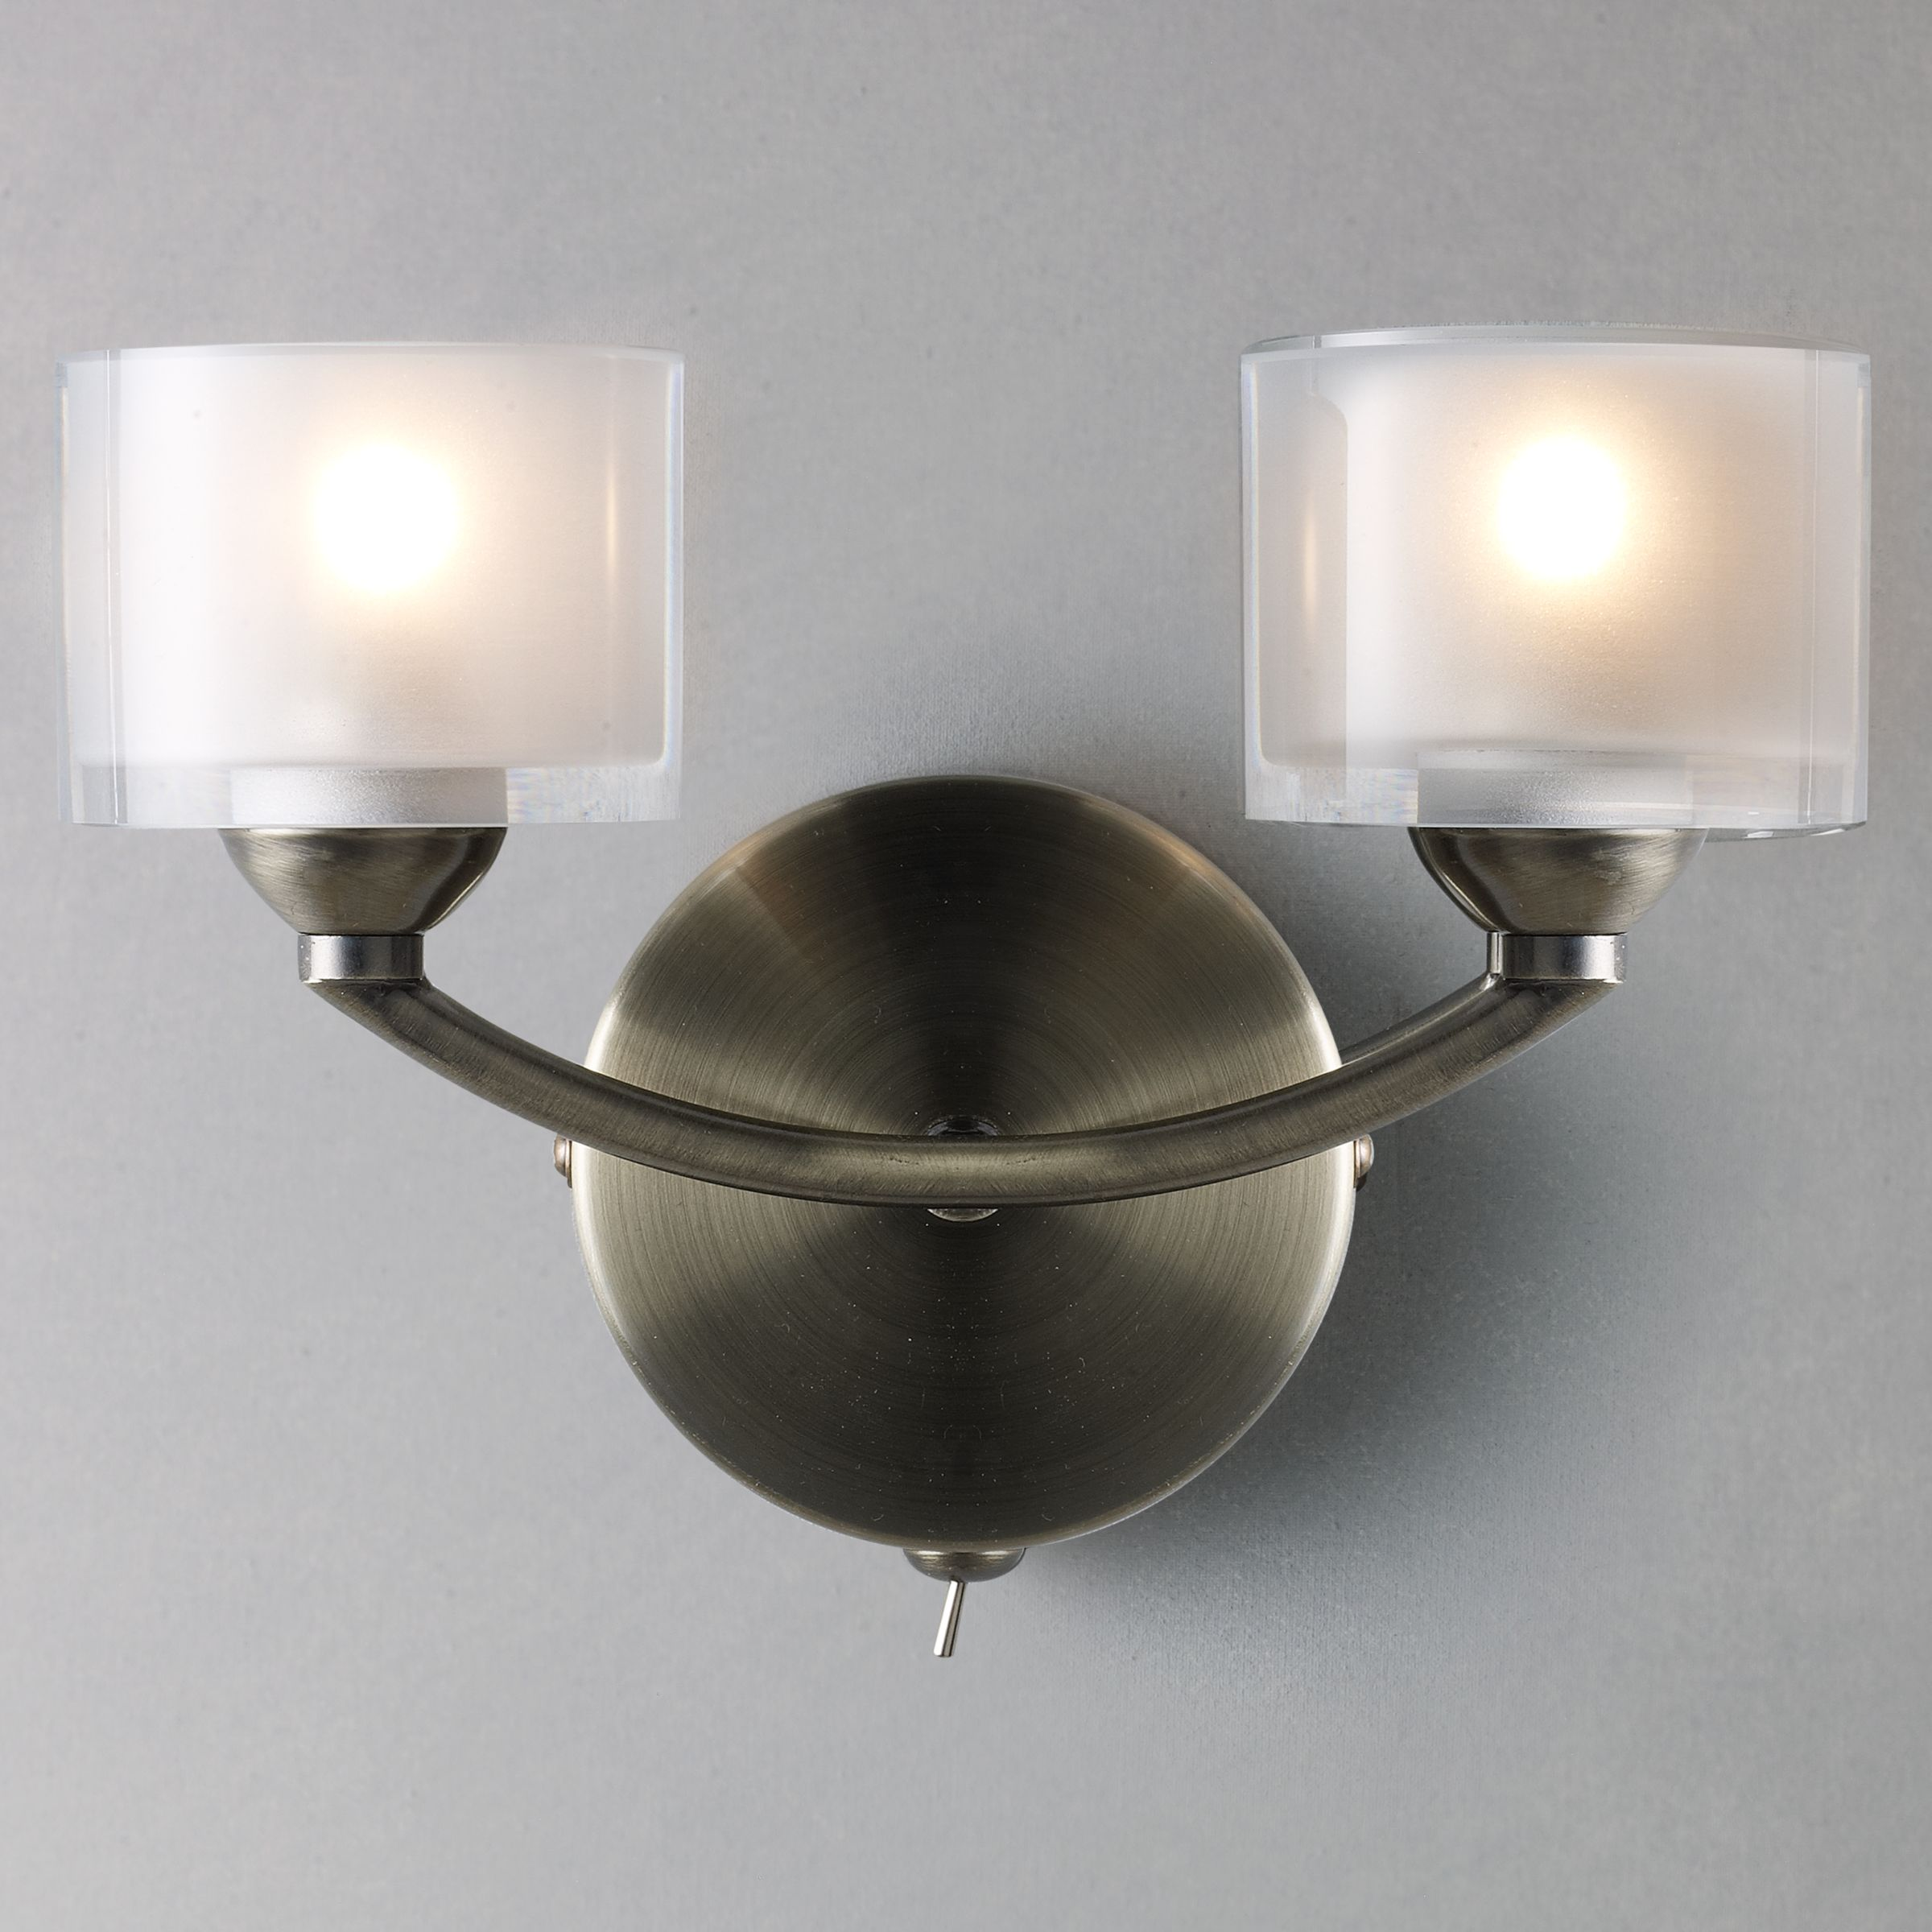 John Lewis Wall Lights Glass : Buy John Lewis Paige Double Wall Light John Lewis